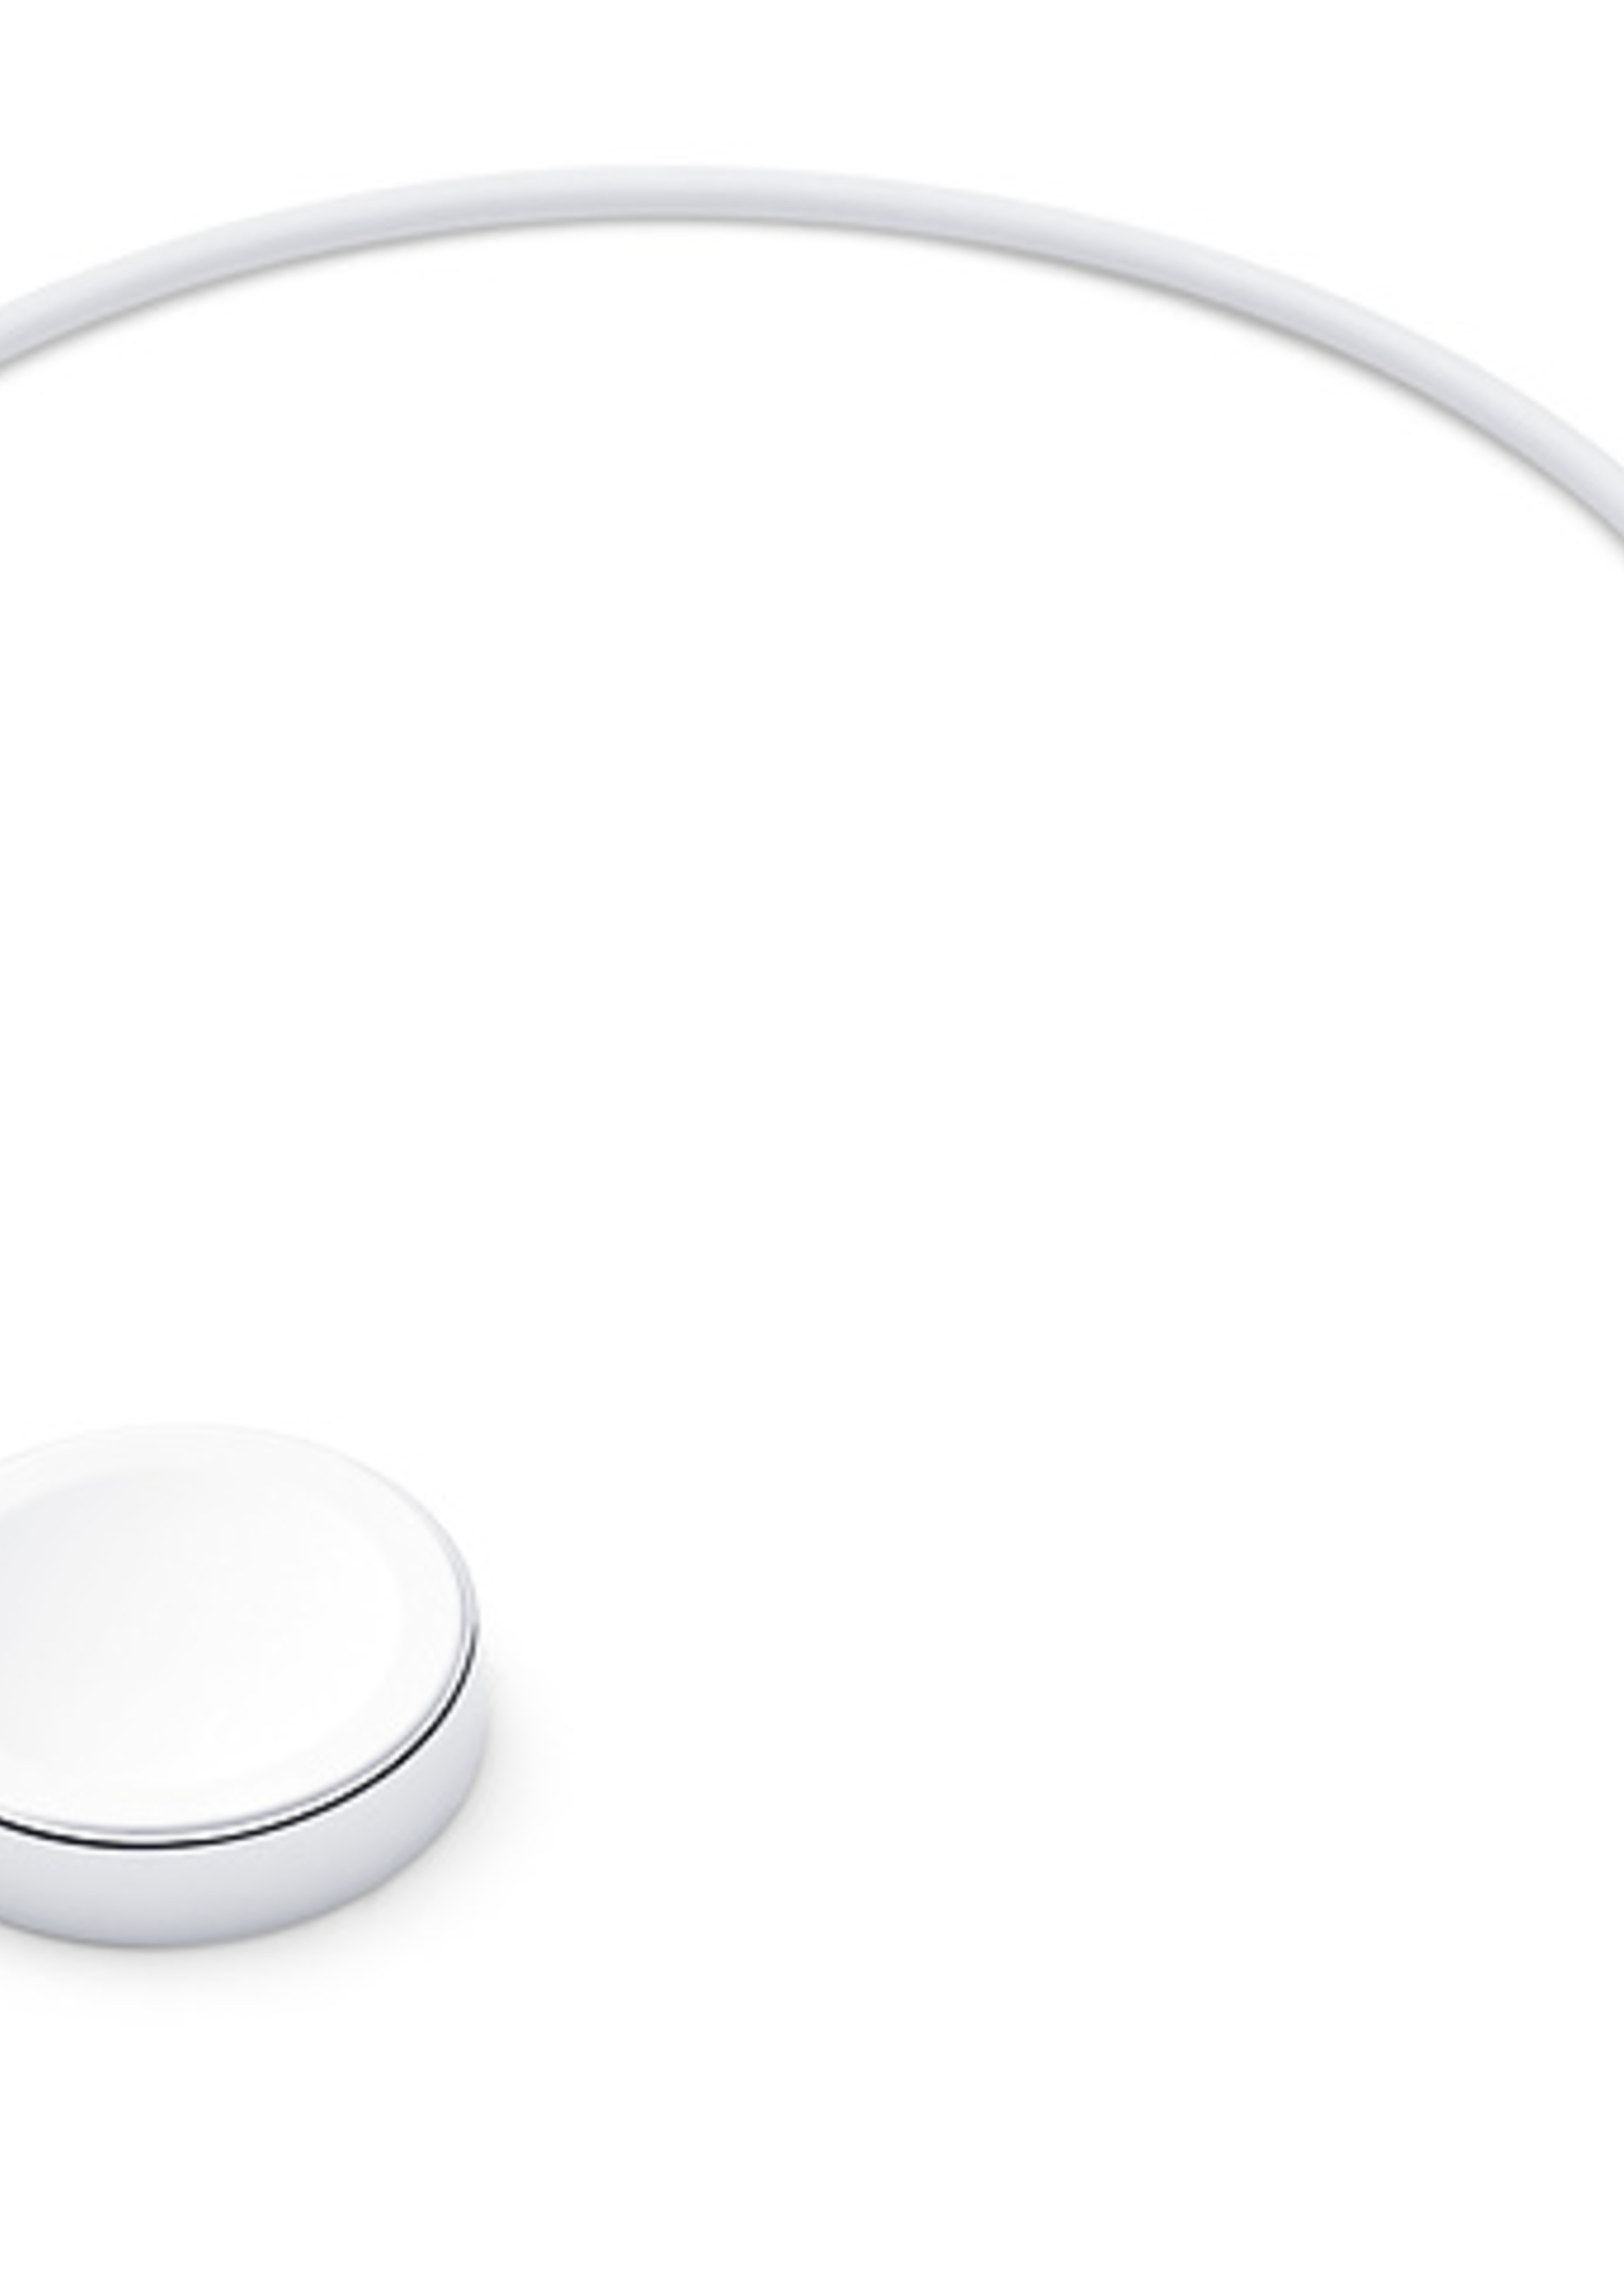 Apple Watch Magnetic Charging Cable .3m